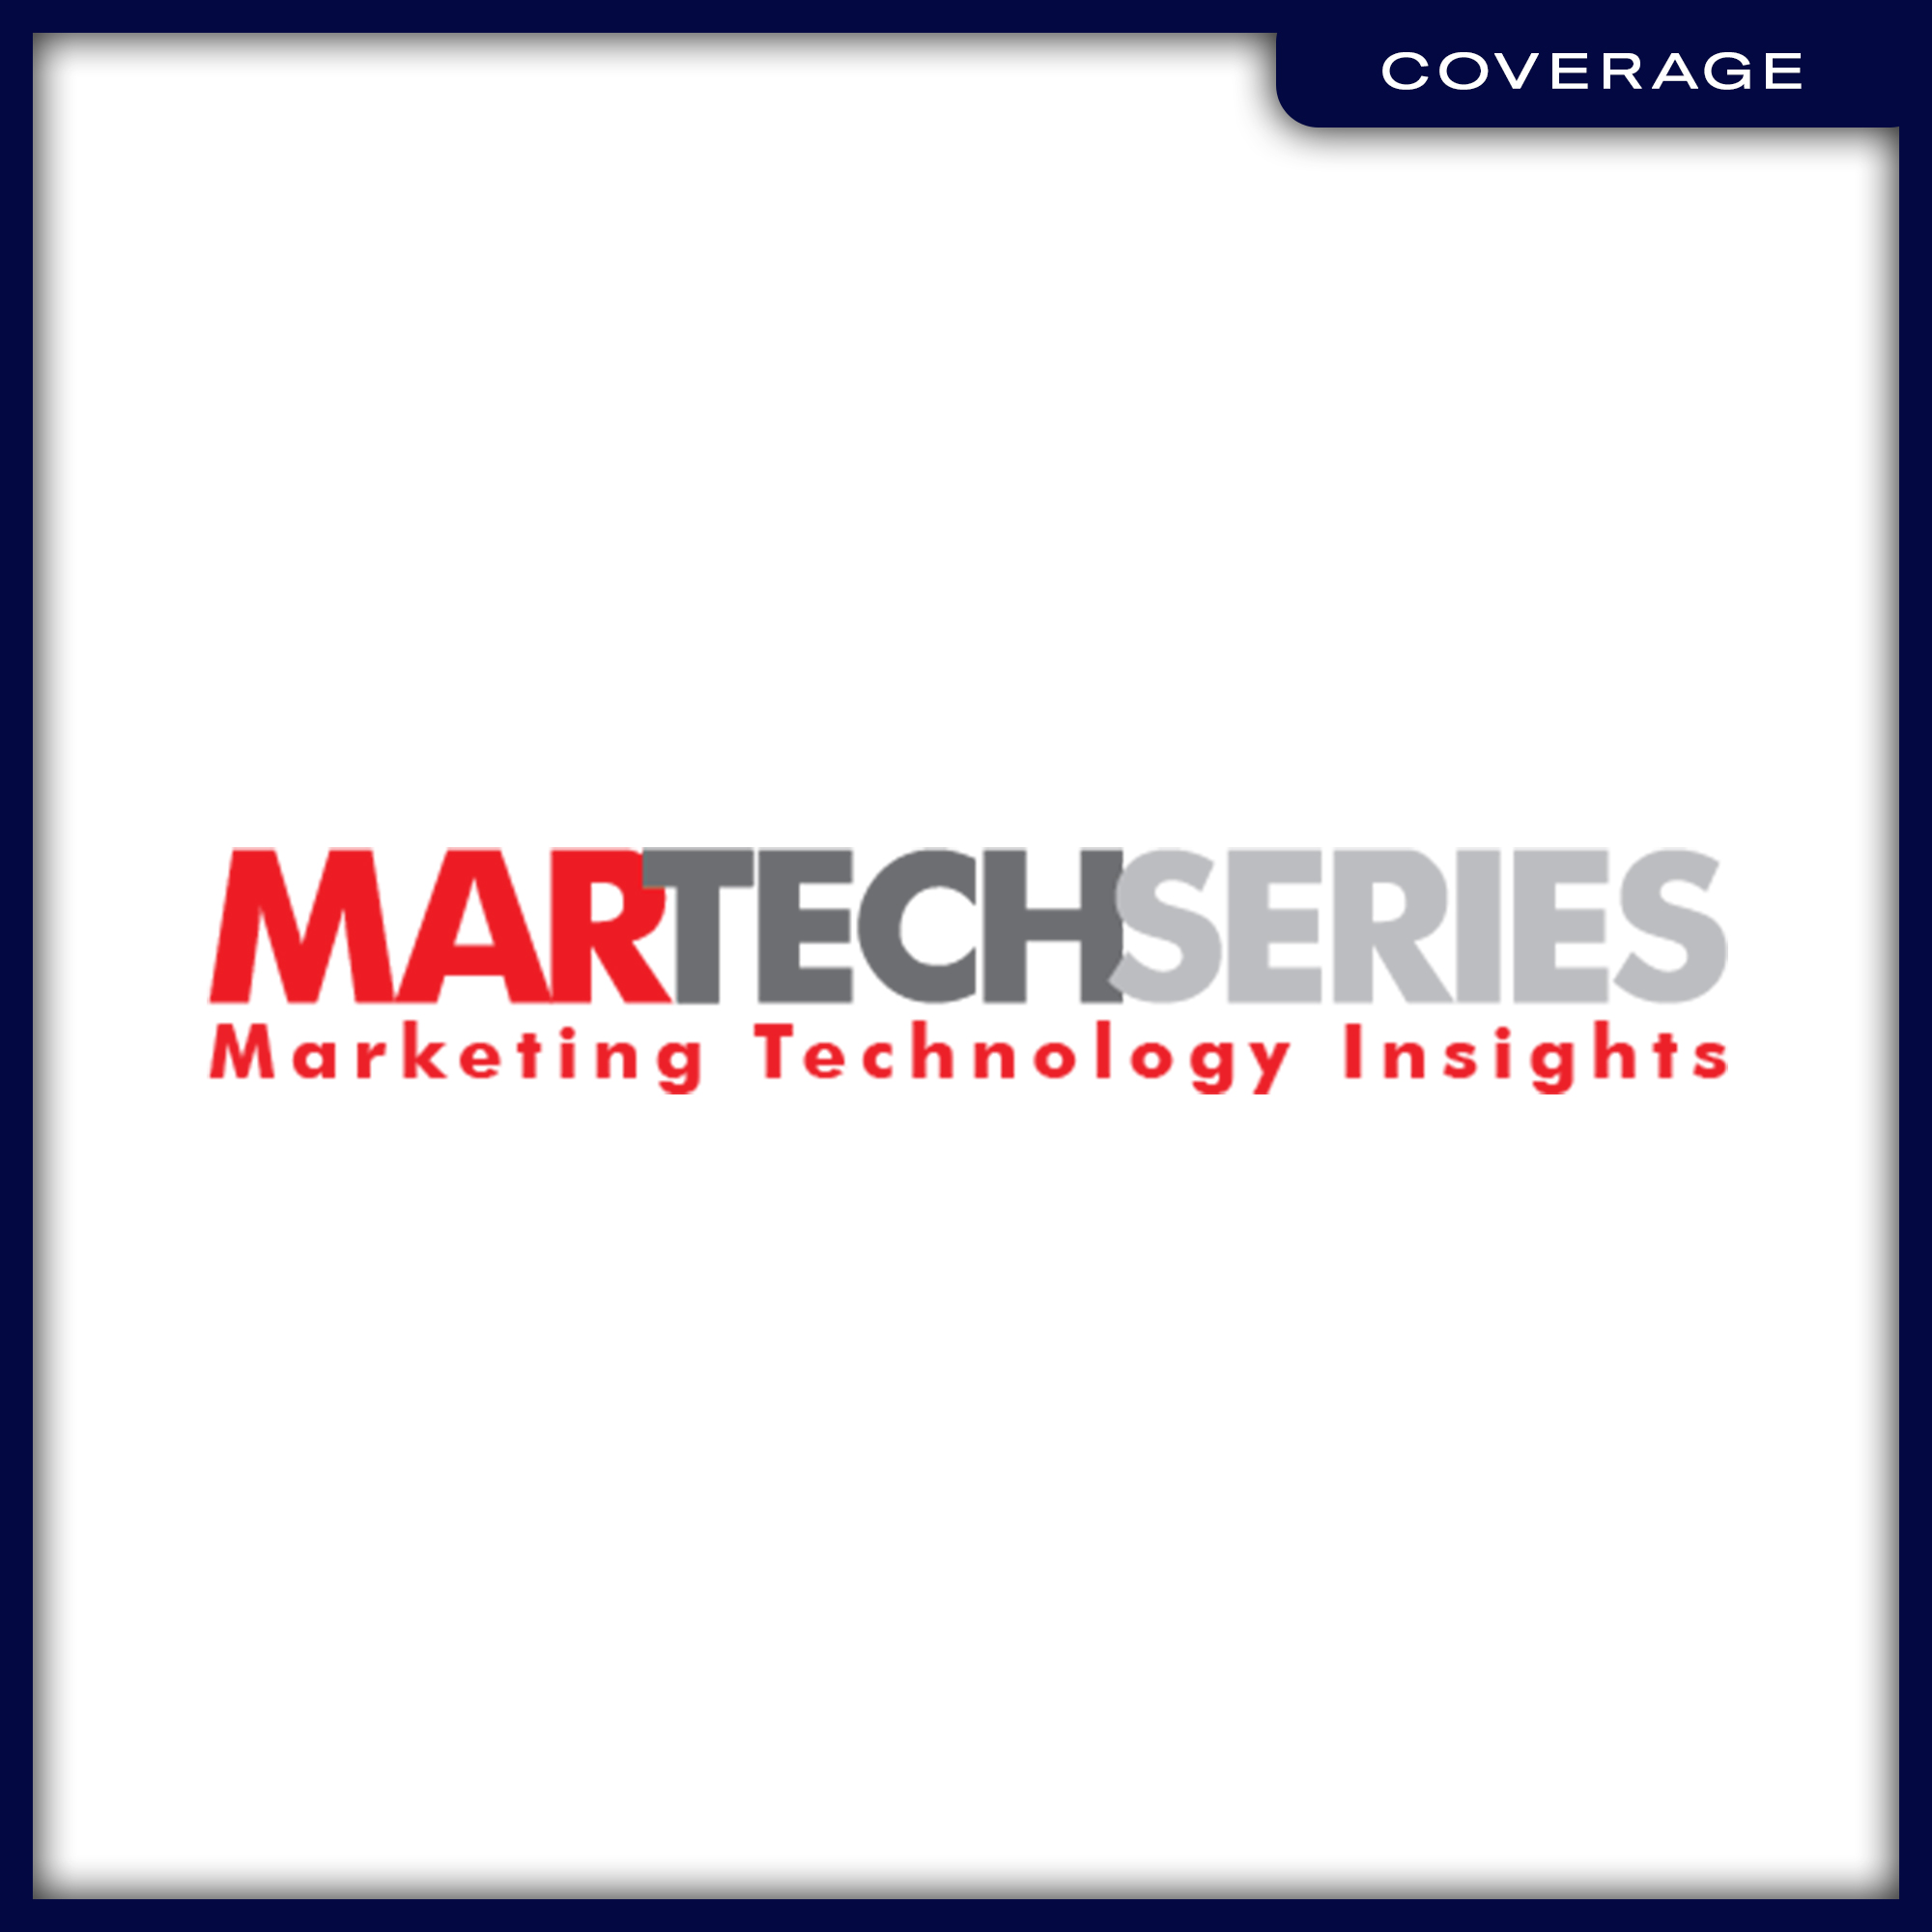 21_Coverage_MartechSeries